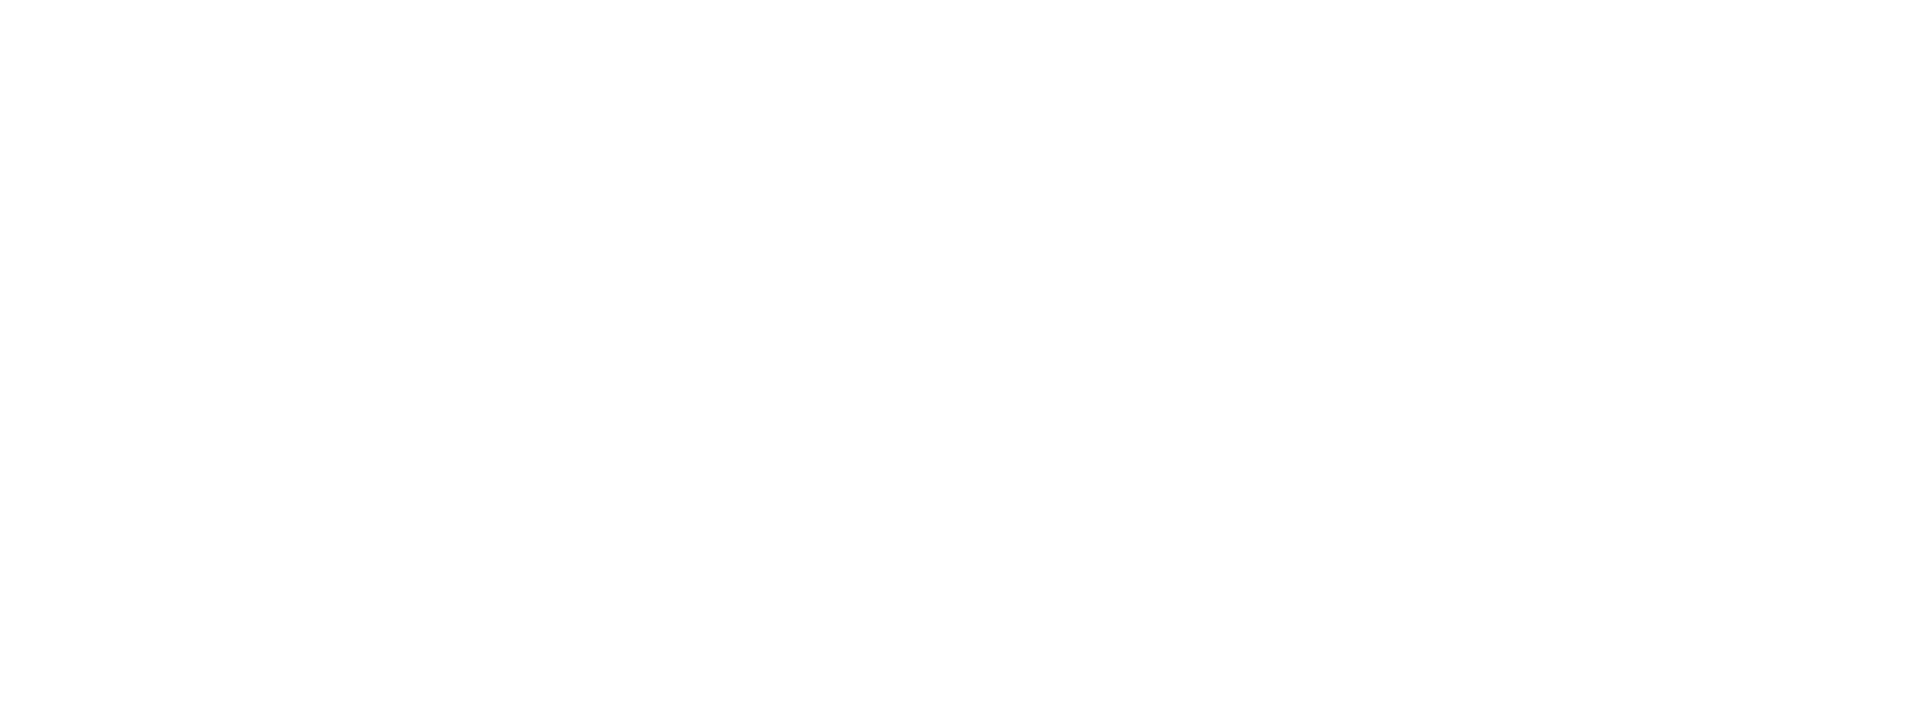 CUNY School of Labor and Urban Studies Homepage